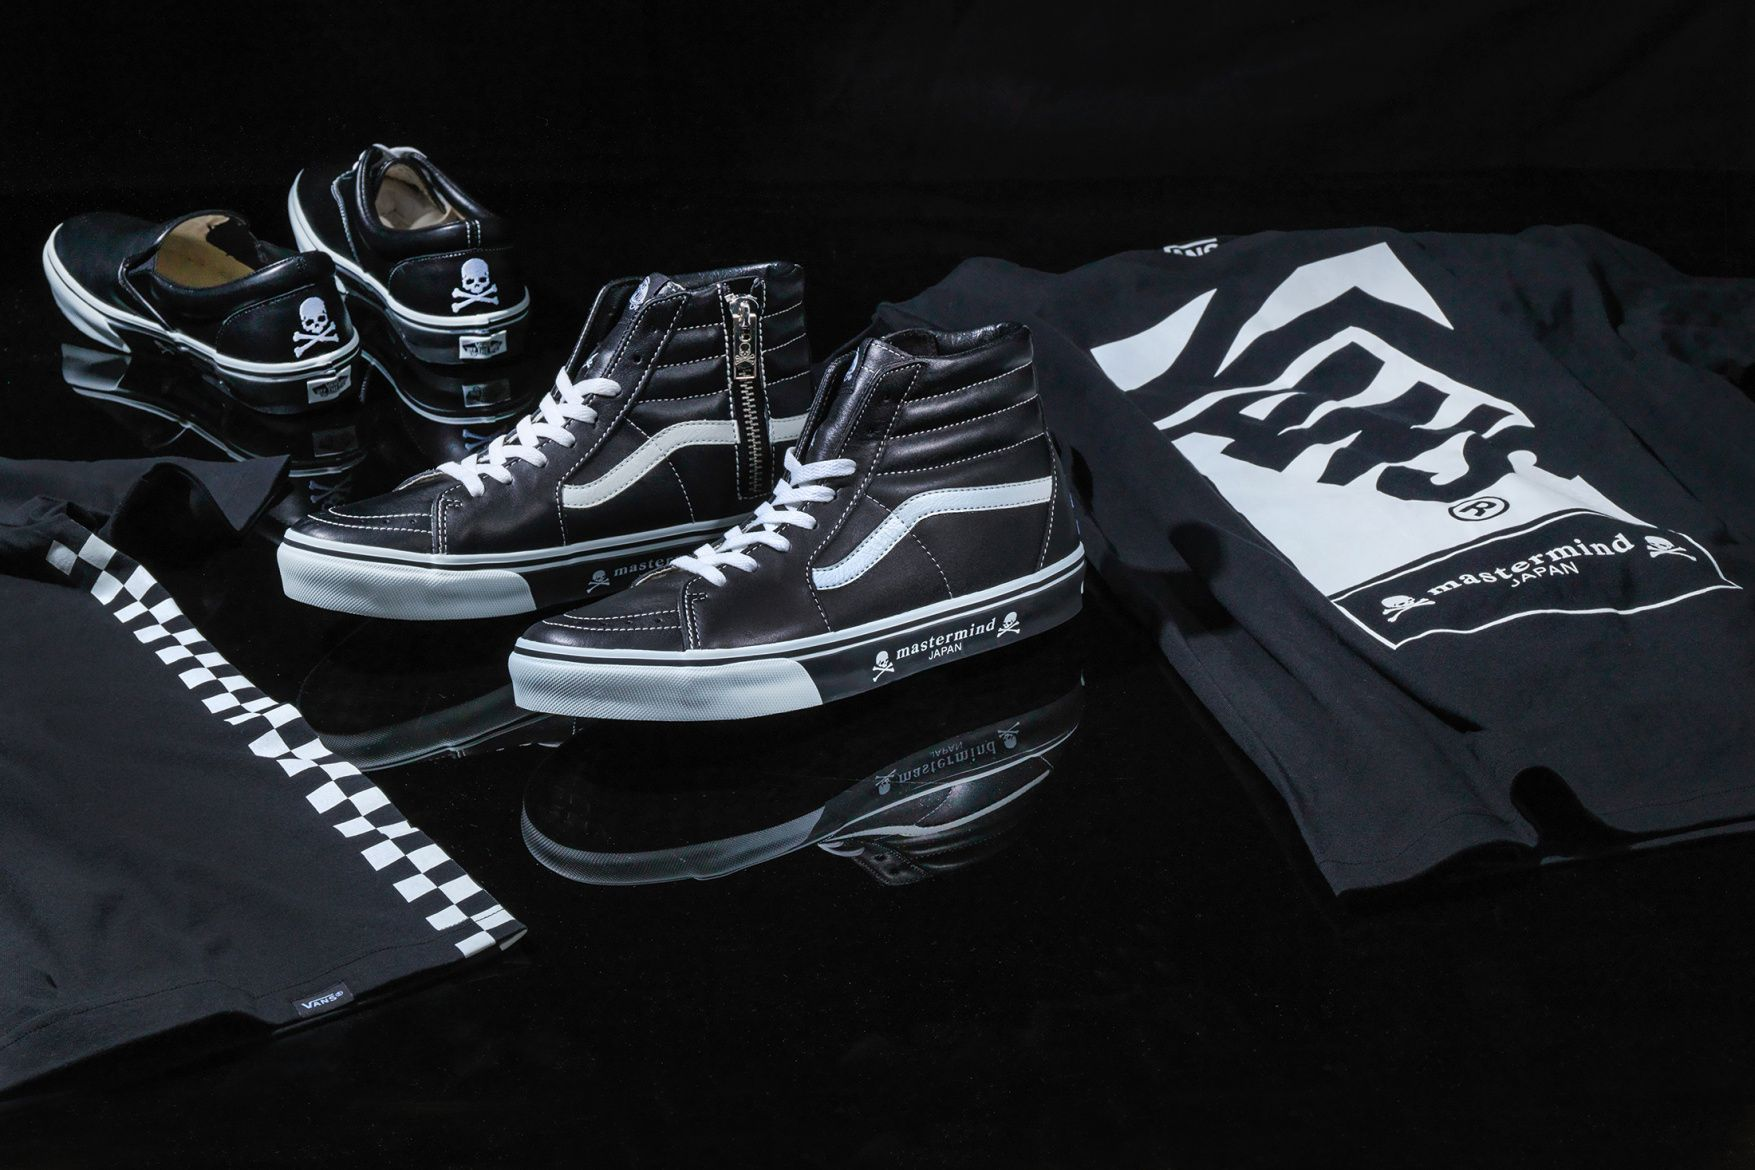 mastermind JAPAN x Vans Footwear & Apparel Collection